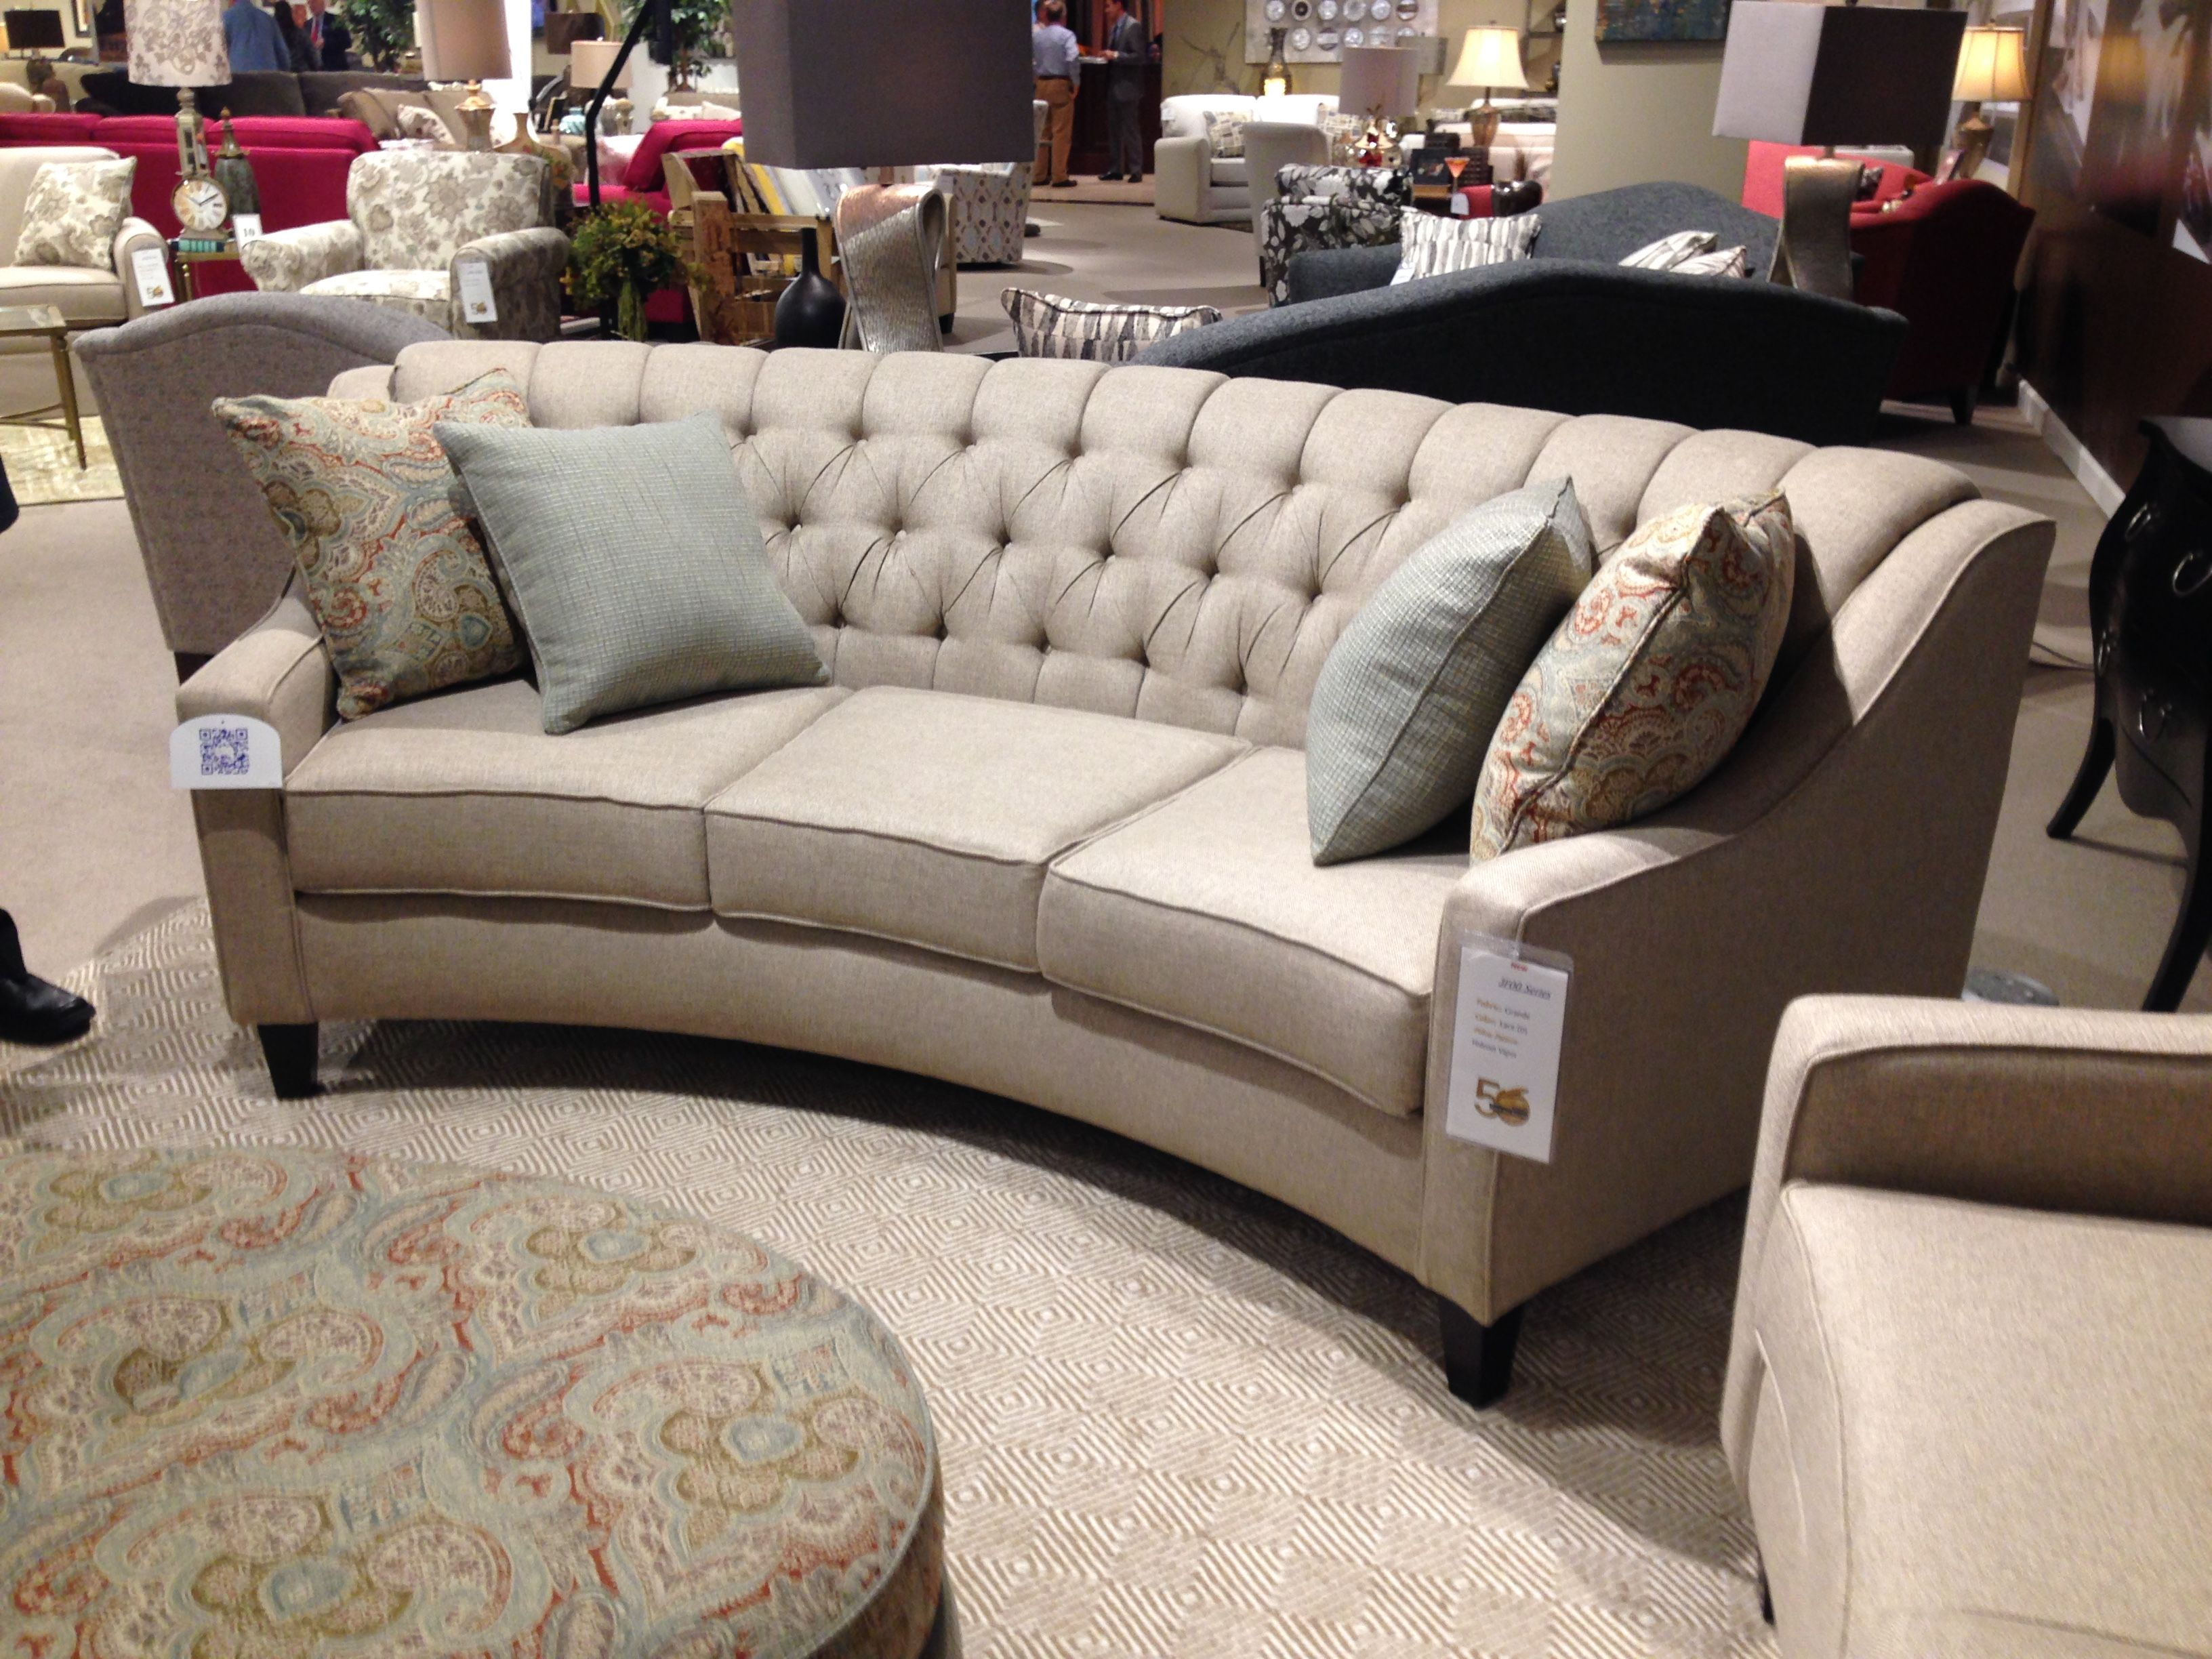 New Curved Sofa From England Furniture Comes In 3 Sizes